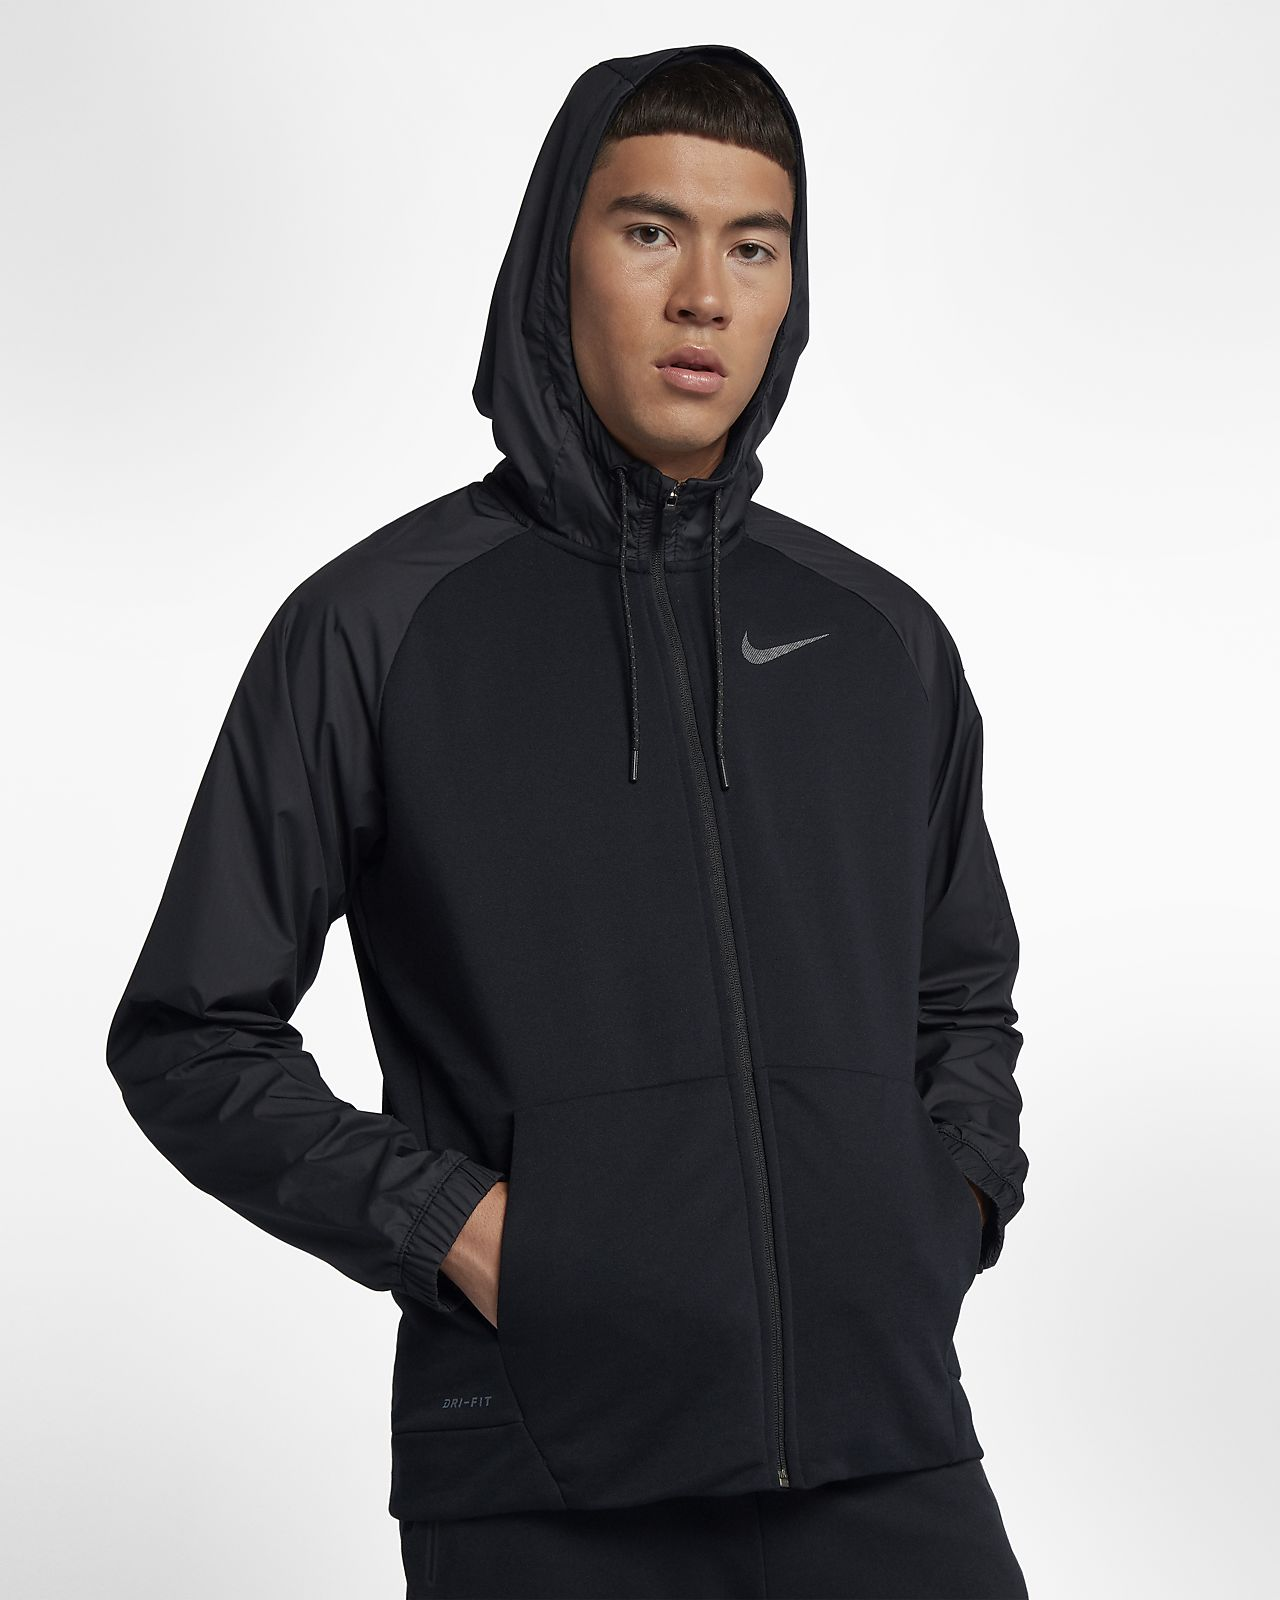 Nike Dri-FIT Men's Utility Full-Zip Training Hoodie